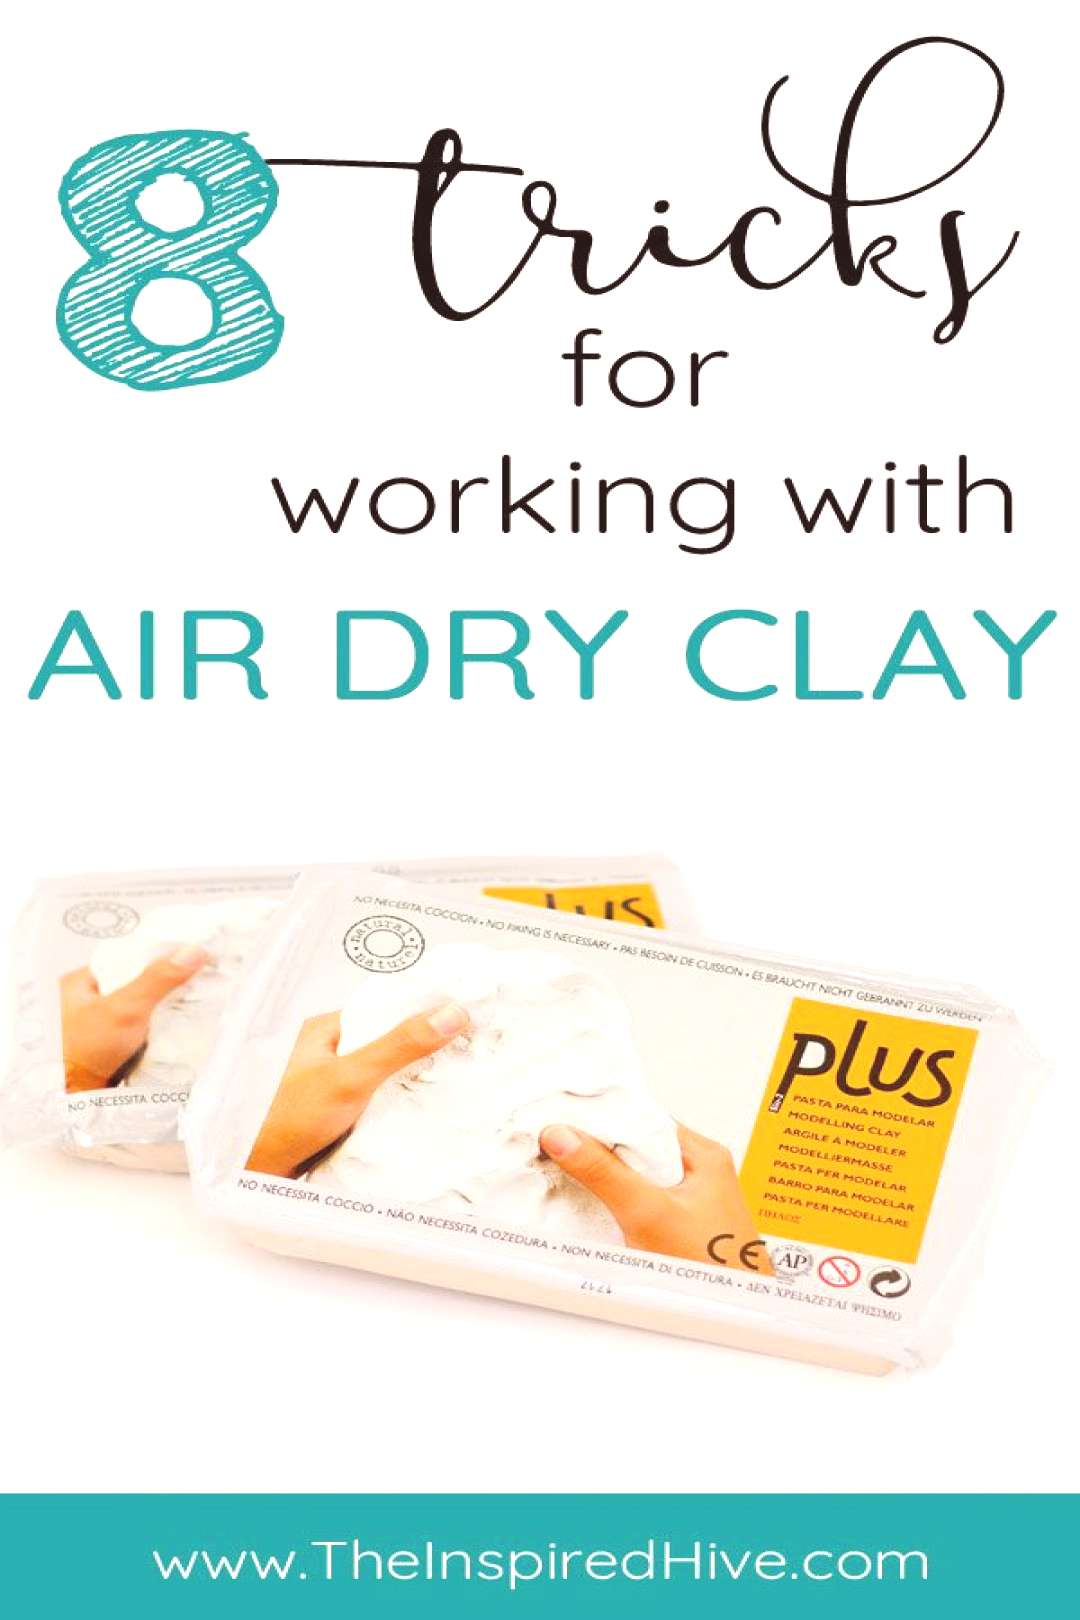 8 great tips and tricks for air dry clay projects. Read these ideas before your next clay craft!